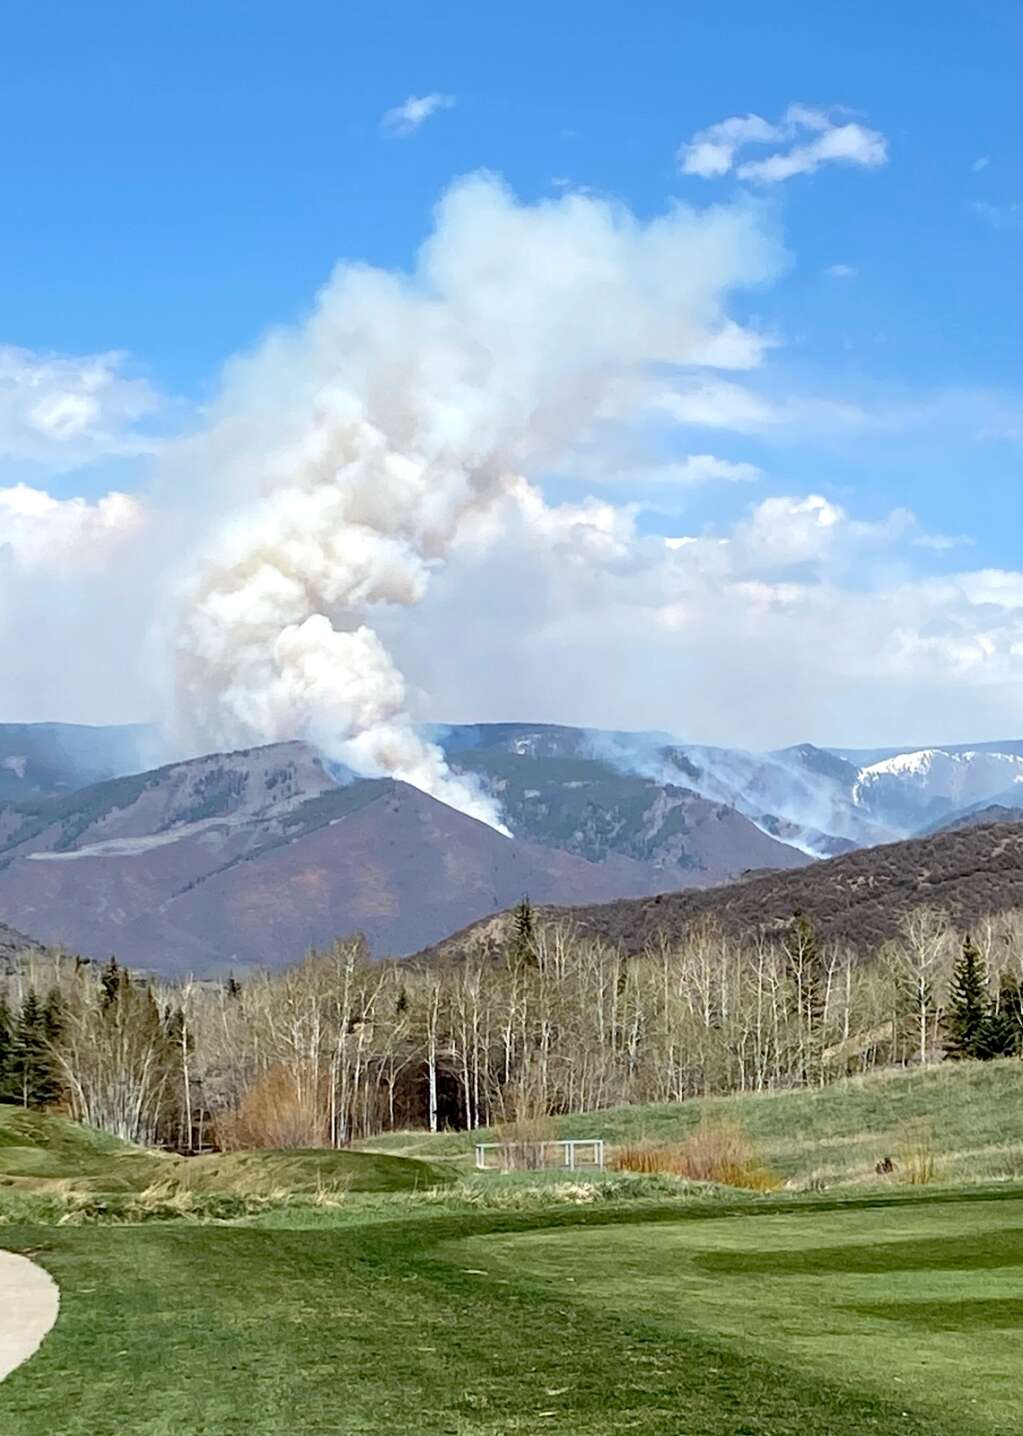 Smoke rises from the Collins Creek prescribed fire north of Aspen as seen from the Snowmass Village Golf Course on Friday, May 7, 2021. | David Krause/The Aspen Times